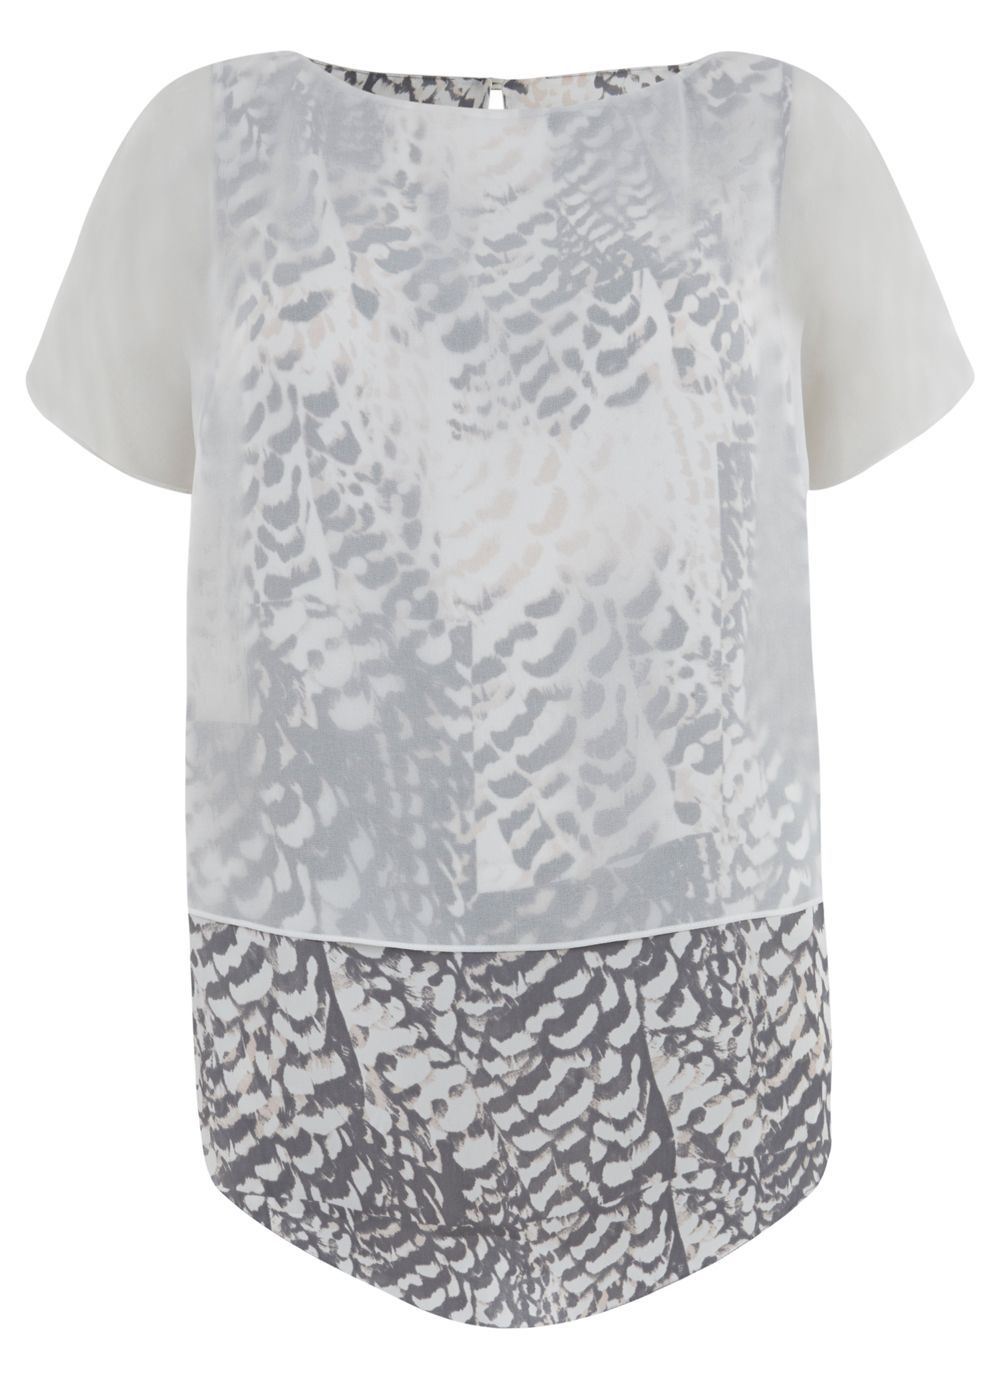 Tansy Layered T-Shirt